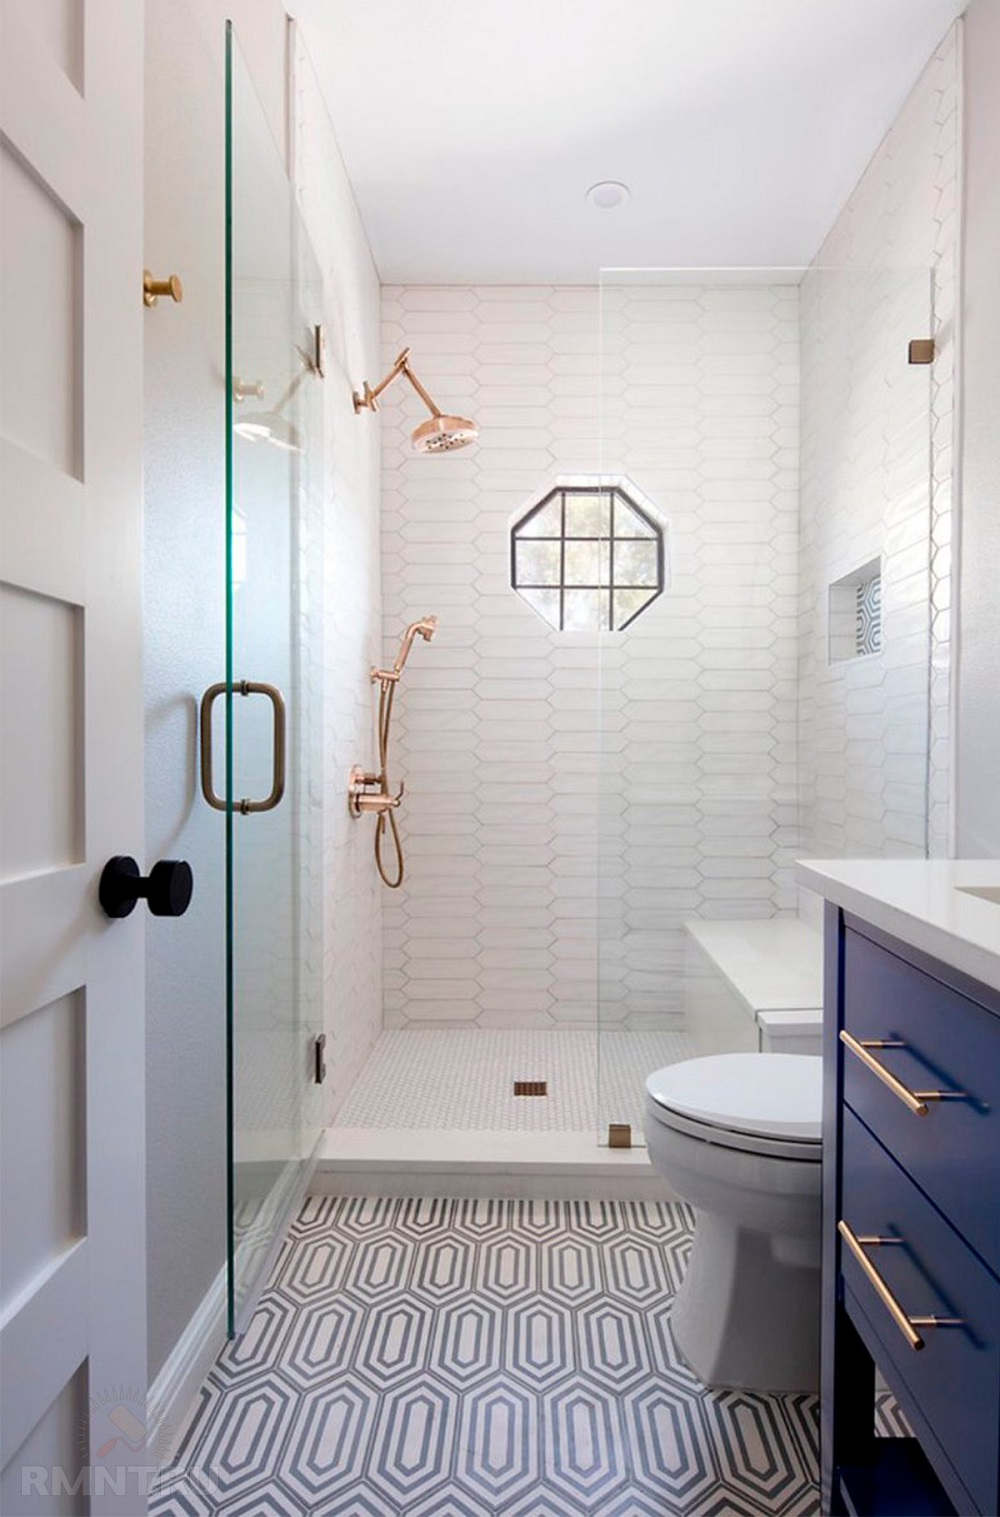 Awesome looking shower tile ideas and designs to check out